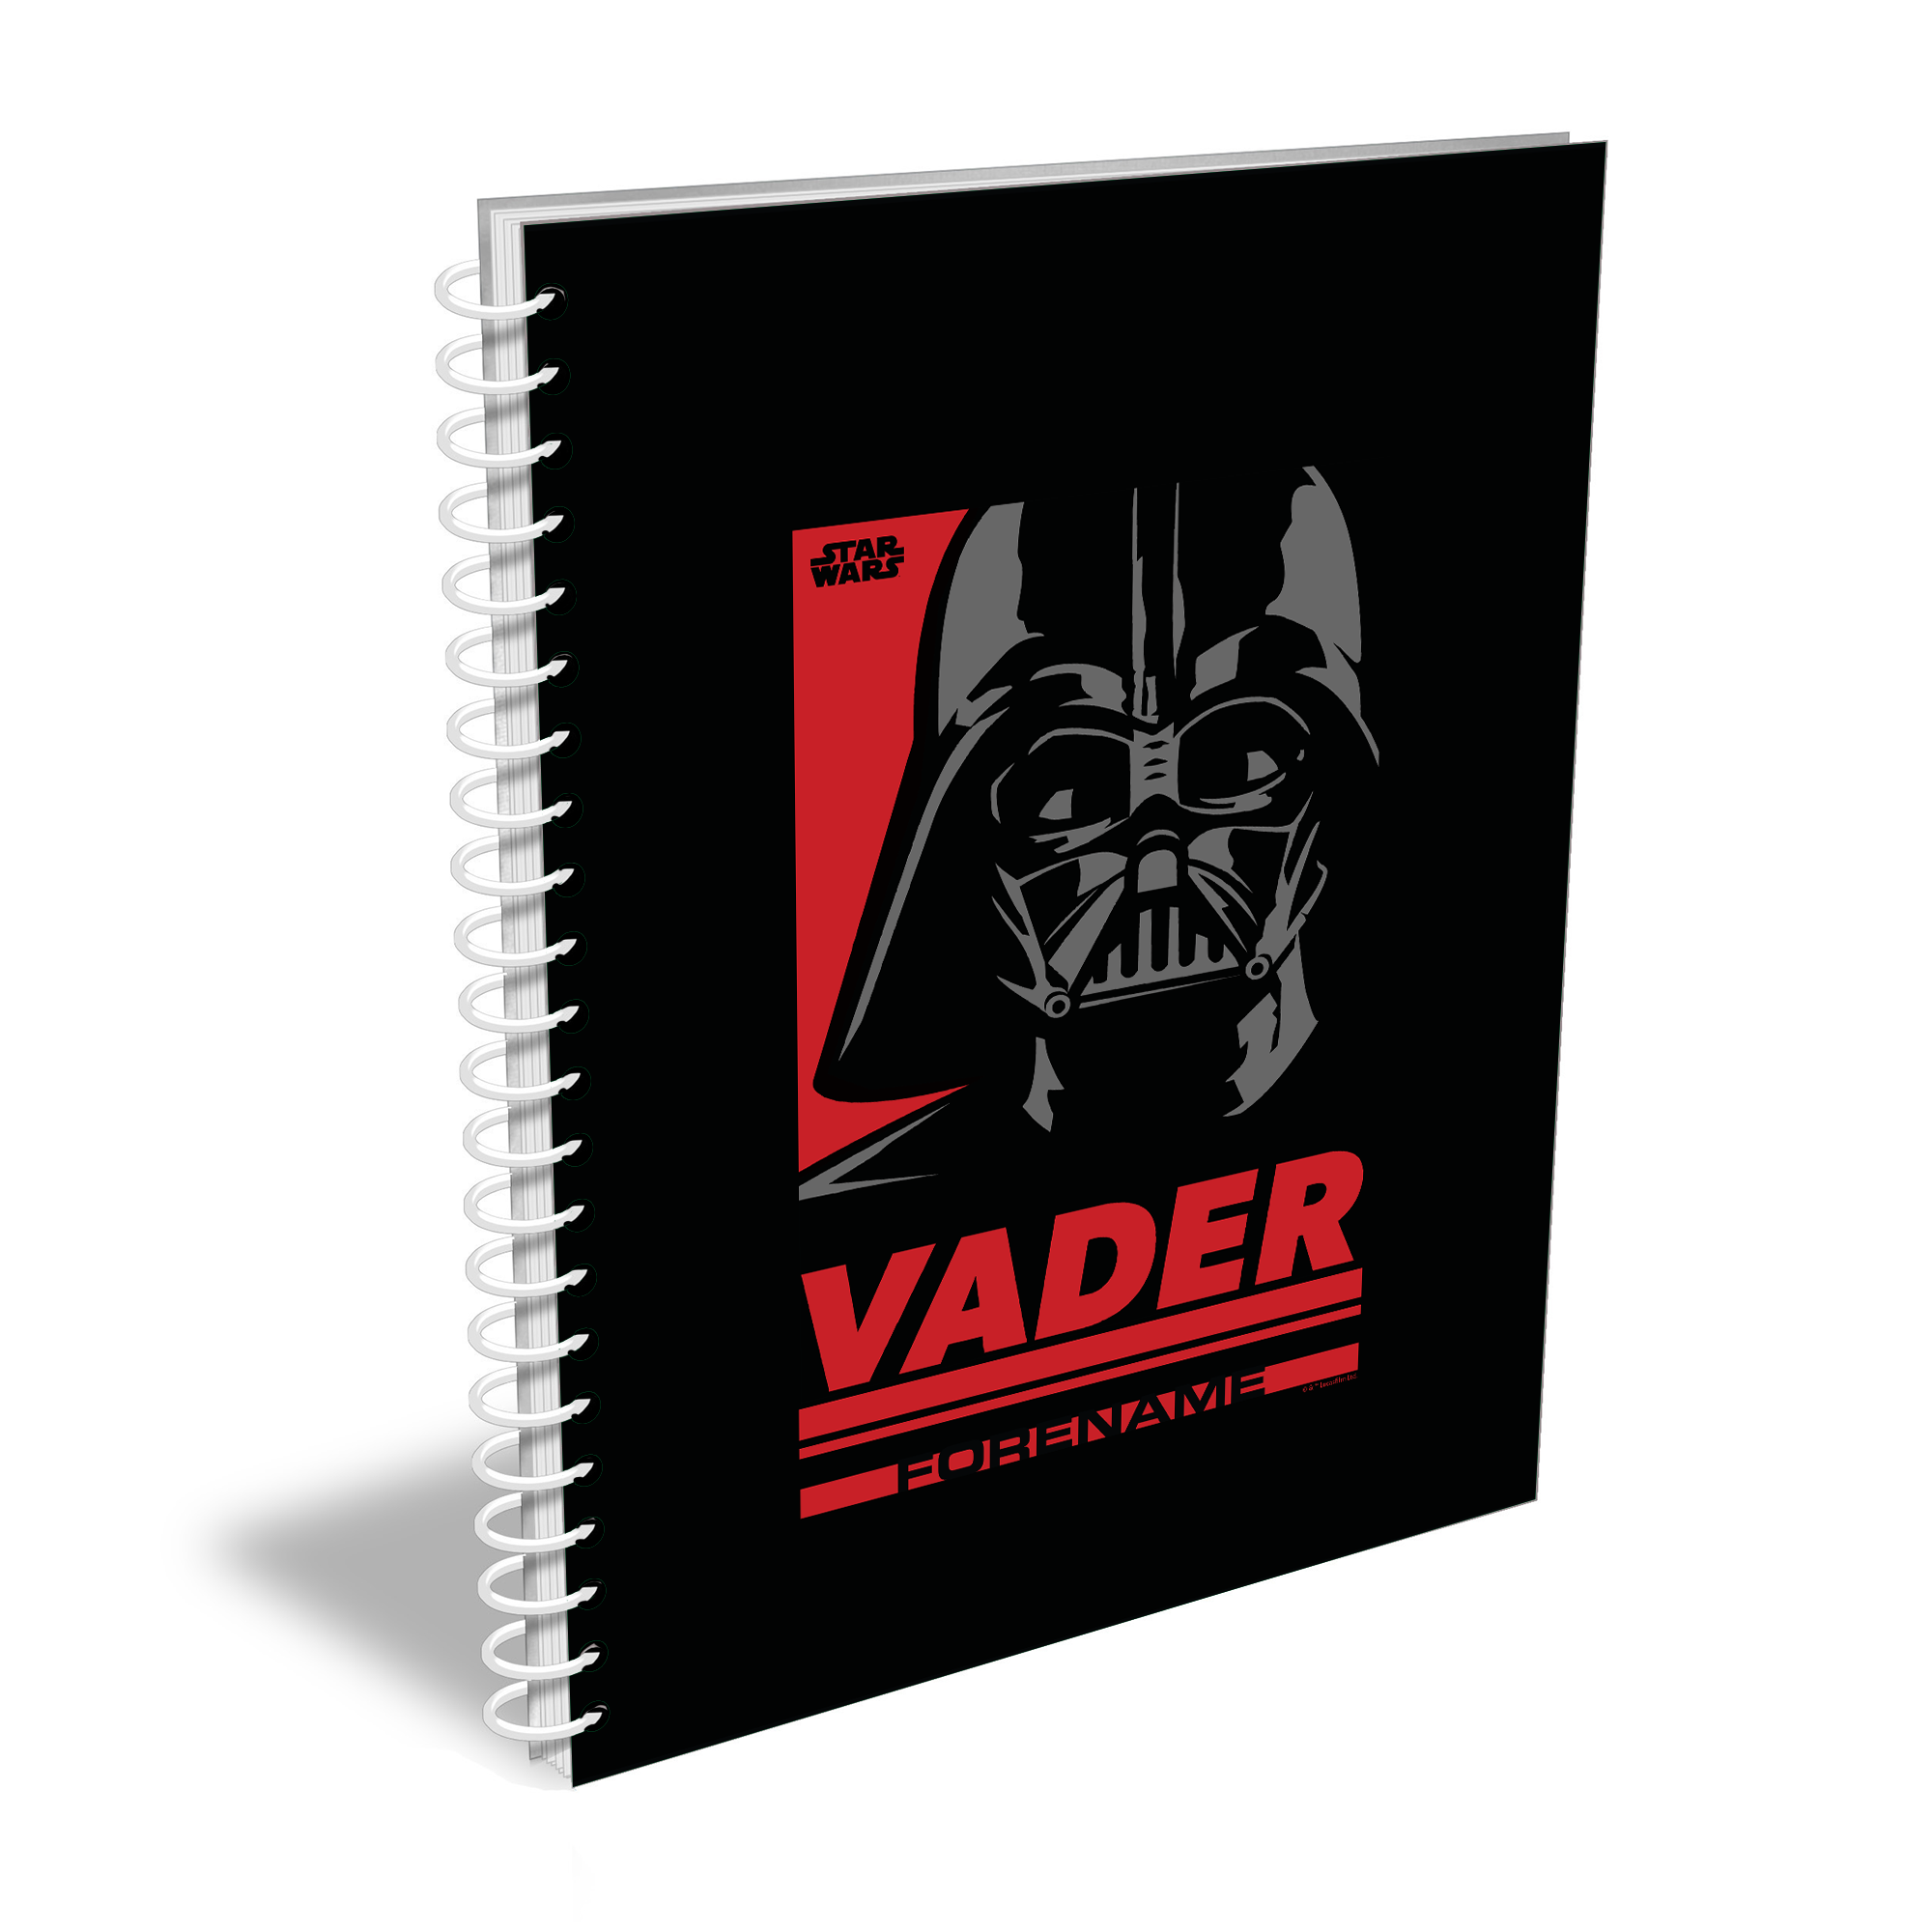 Star Wars Vader Pop Art A5 Notebook